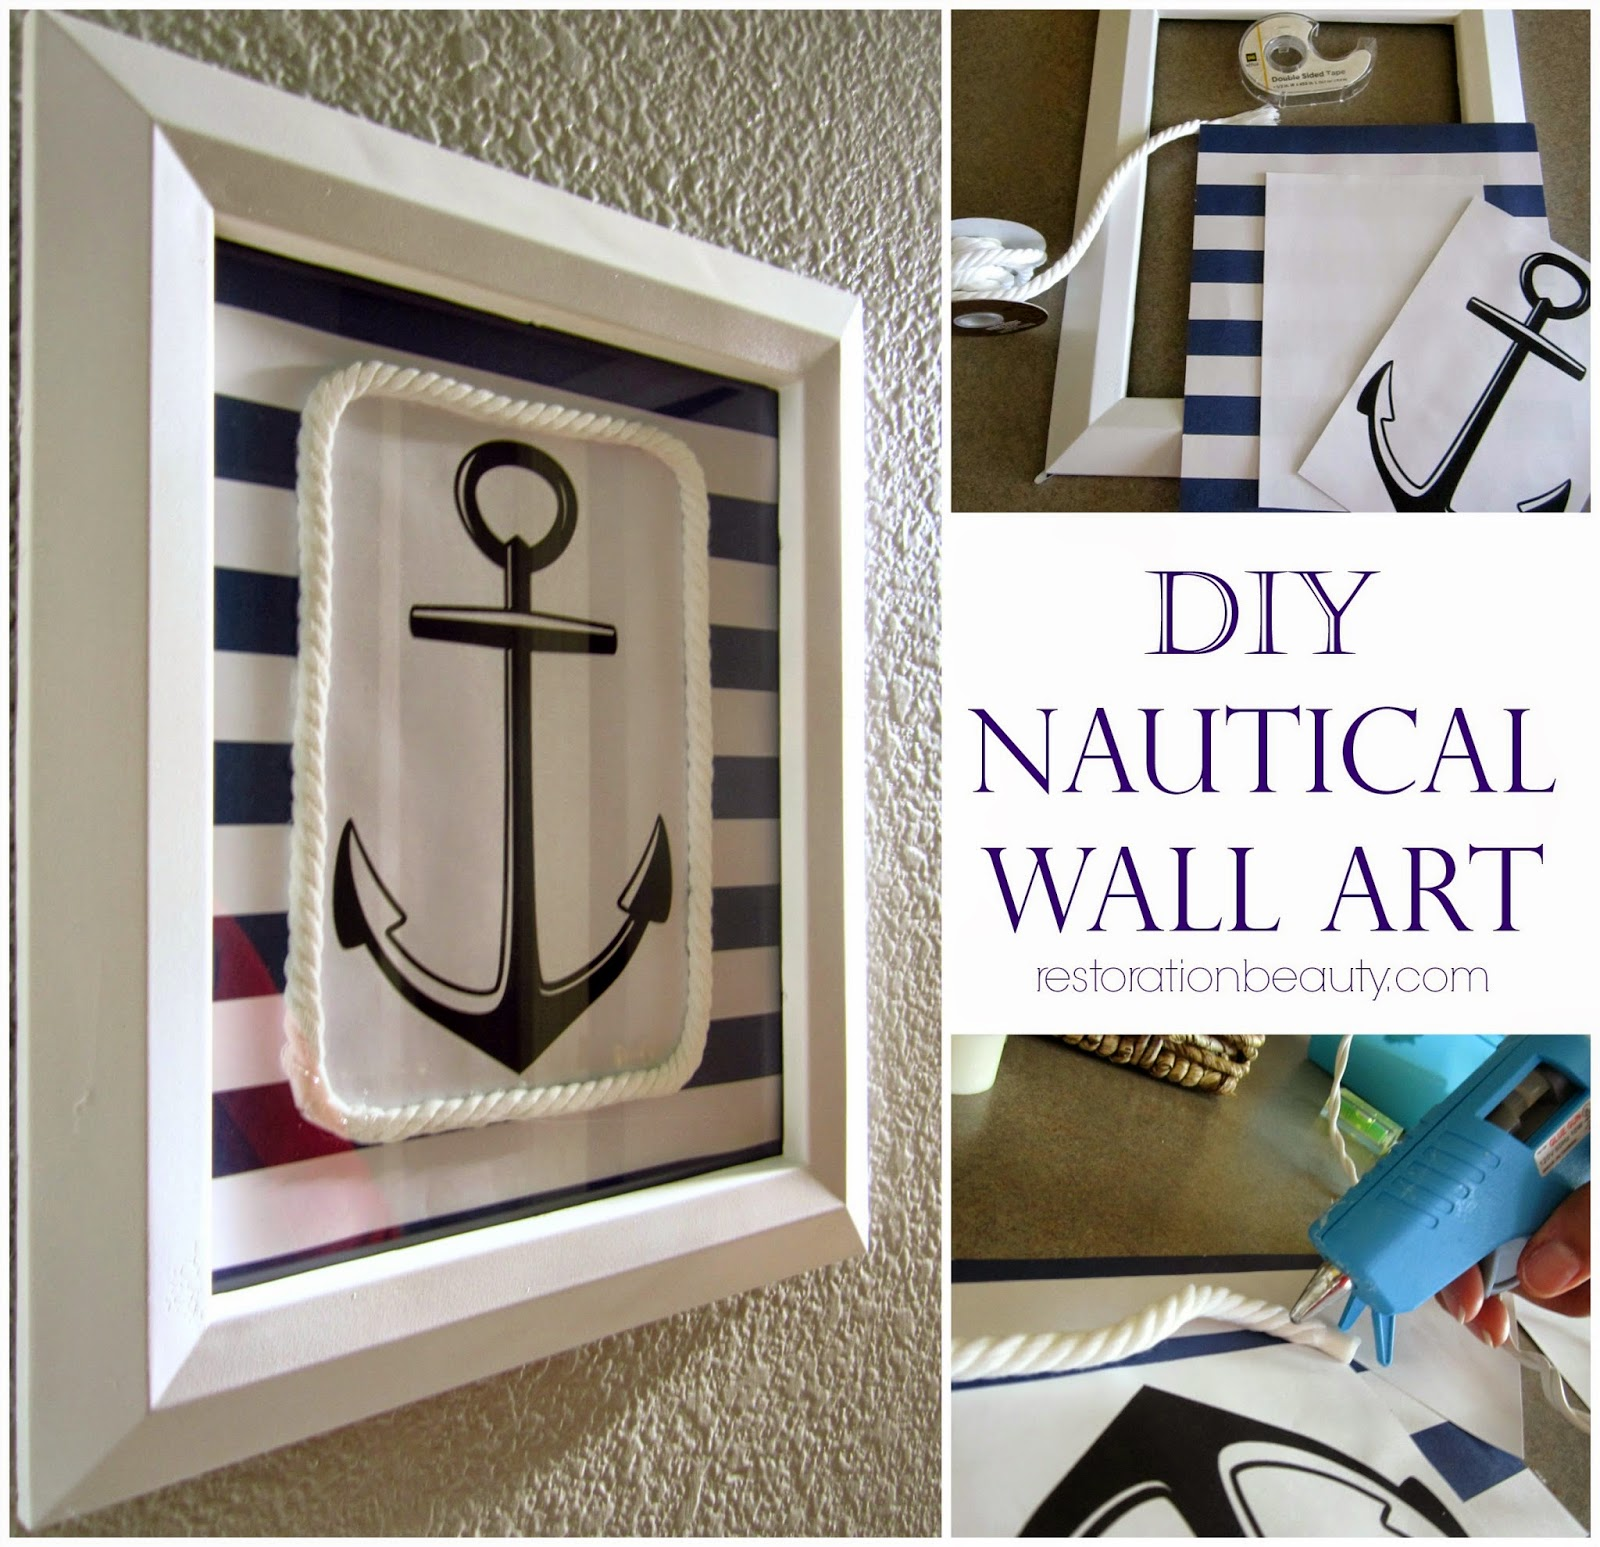 Restoration beauty diy nautical wall art jul 11 2014 jeuxipadfo Gallery